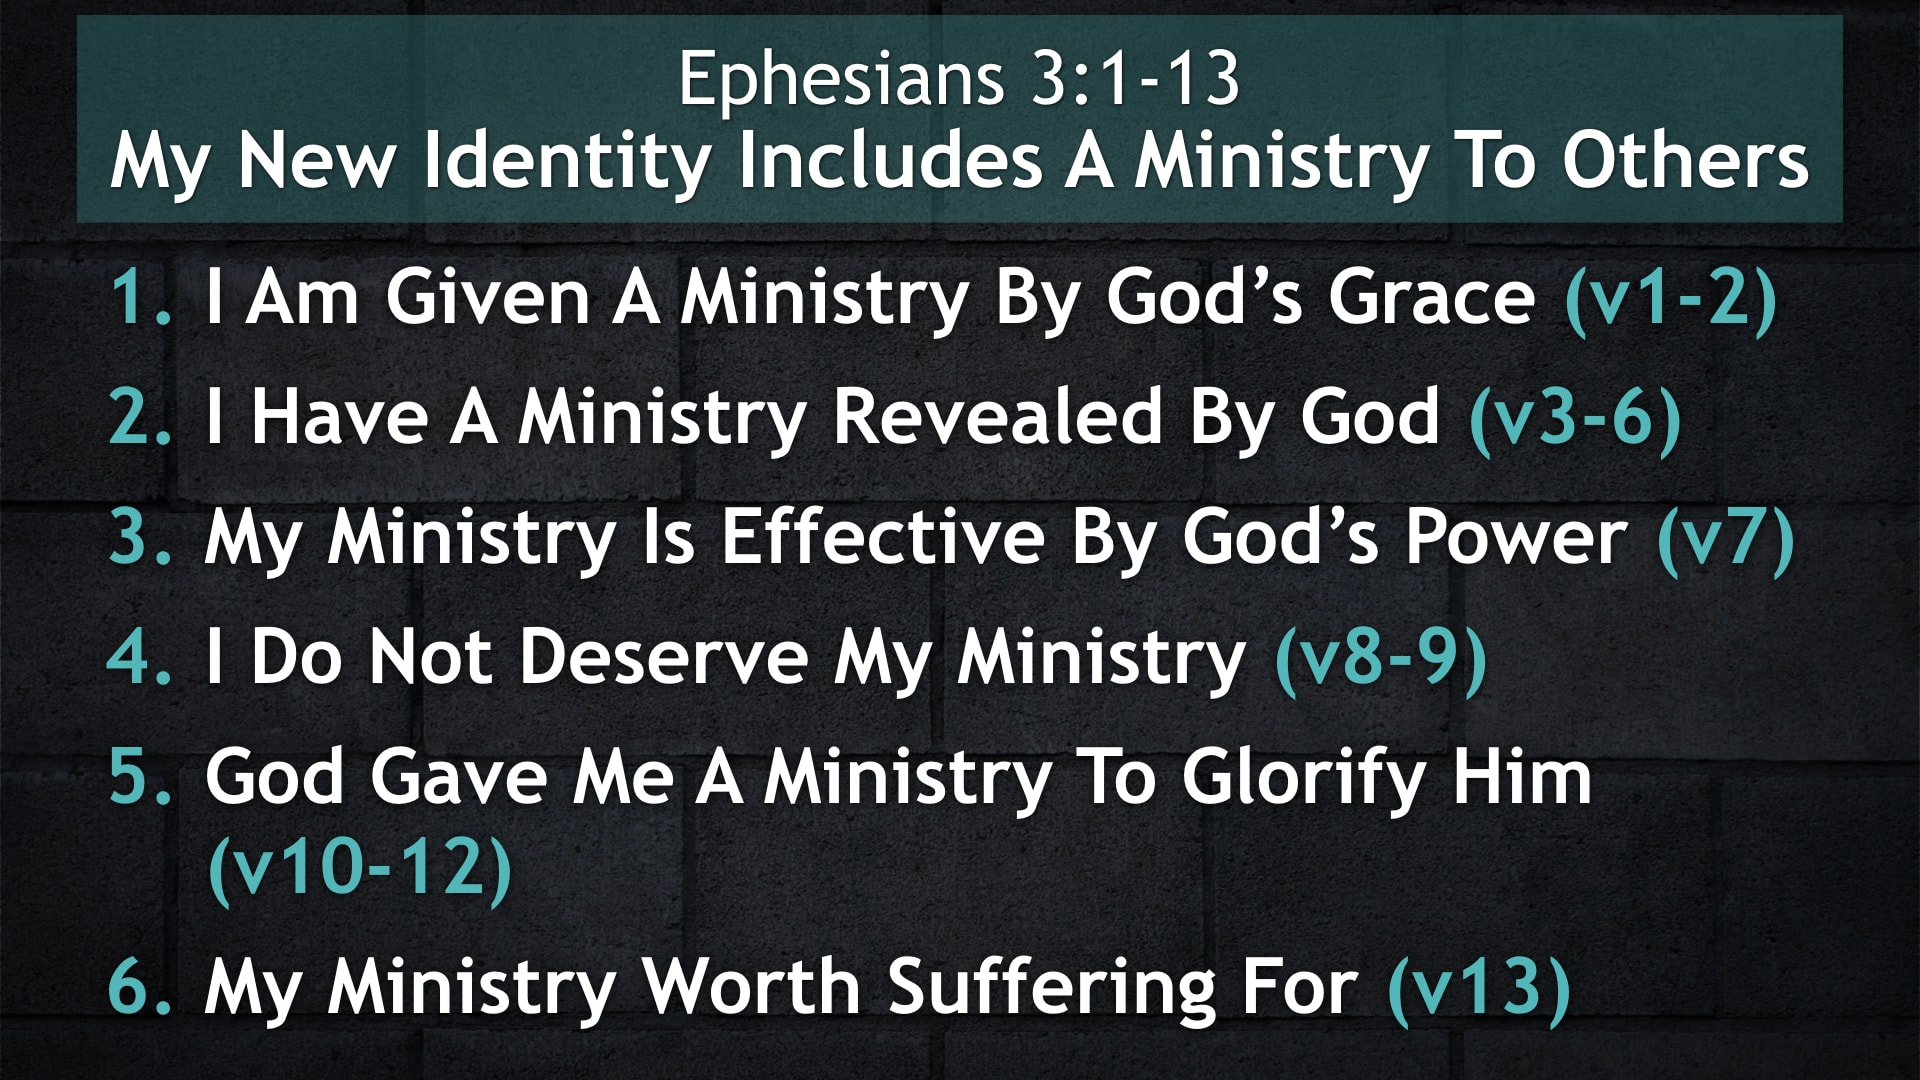 Ephesians 3:1-13, My New Identity Includes A Ministry To Others